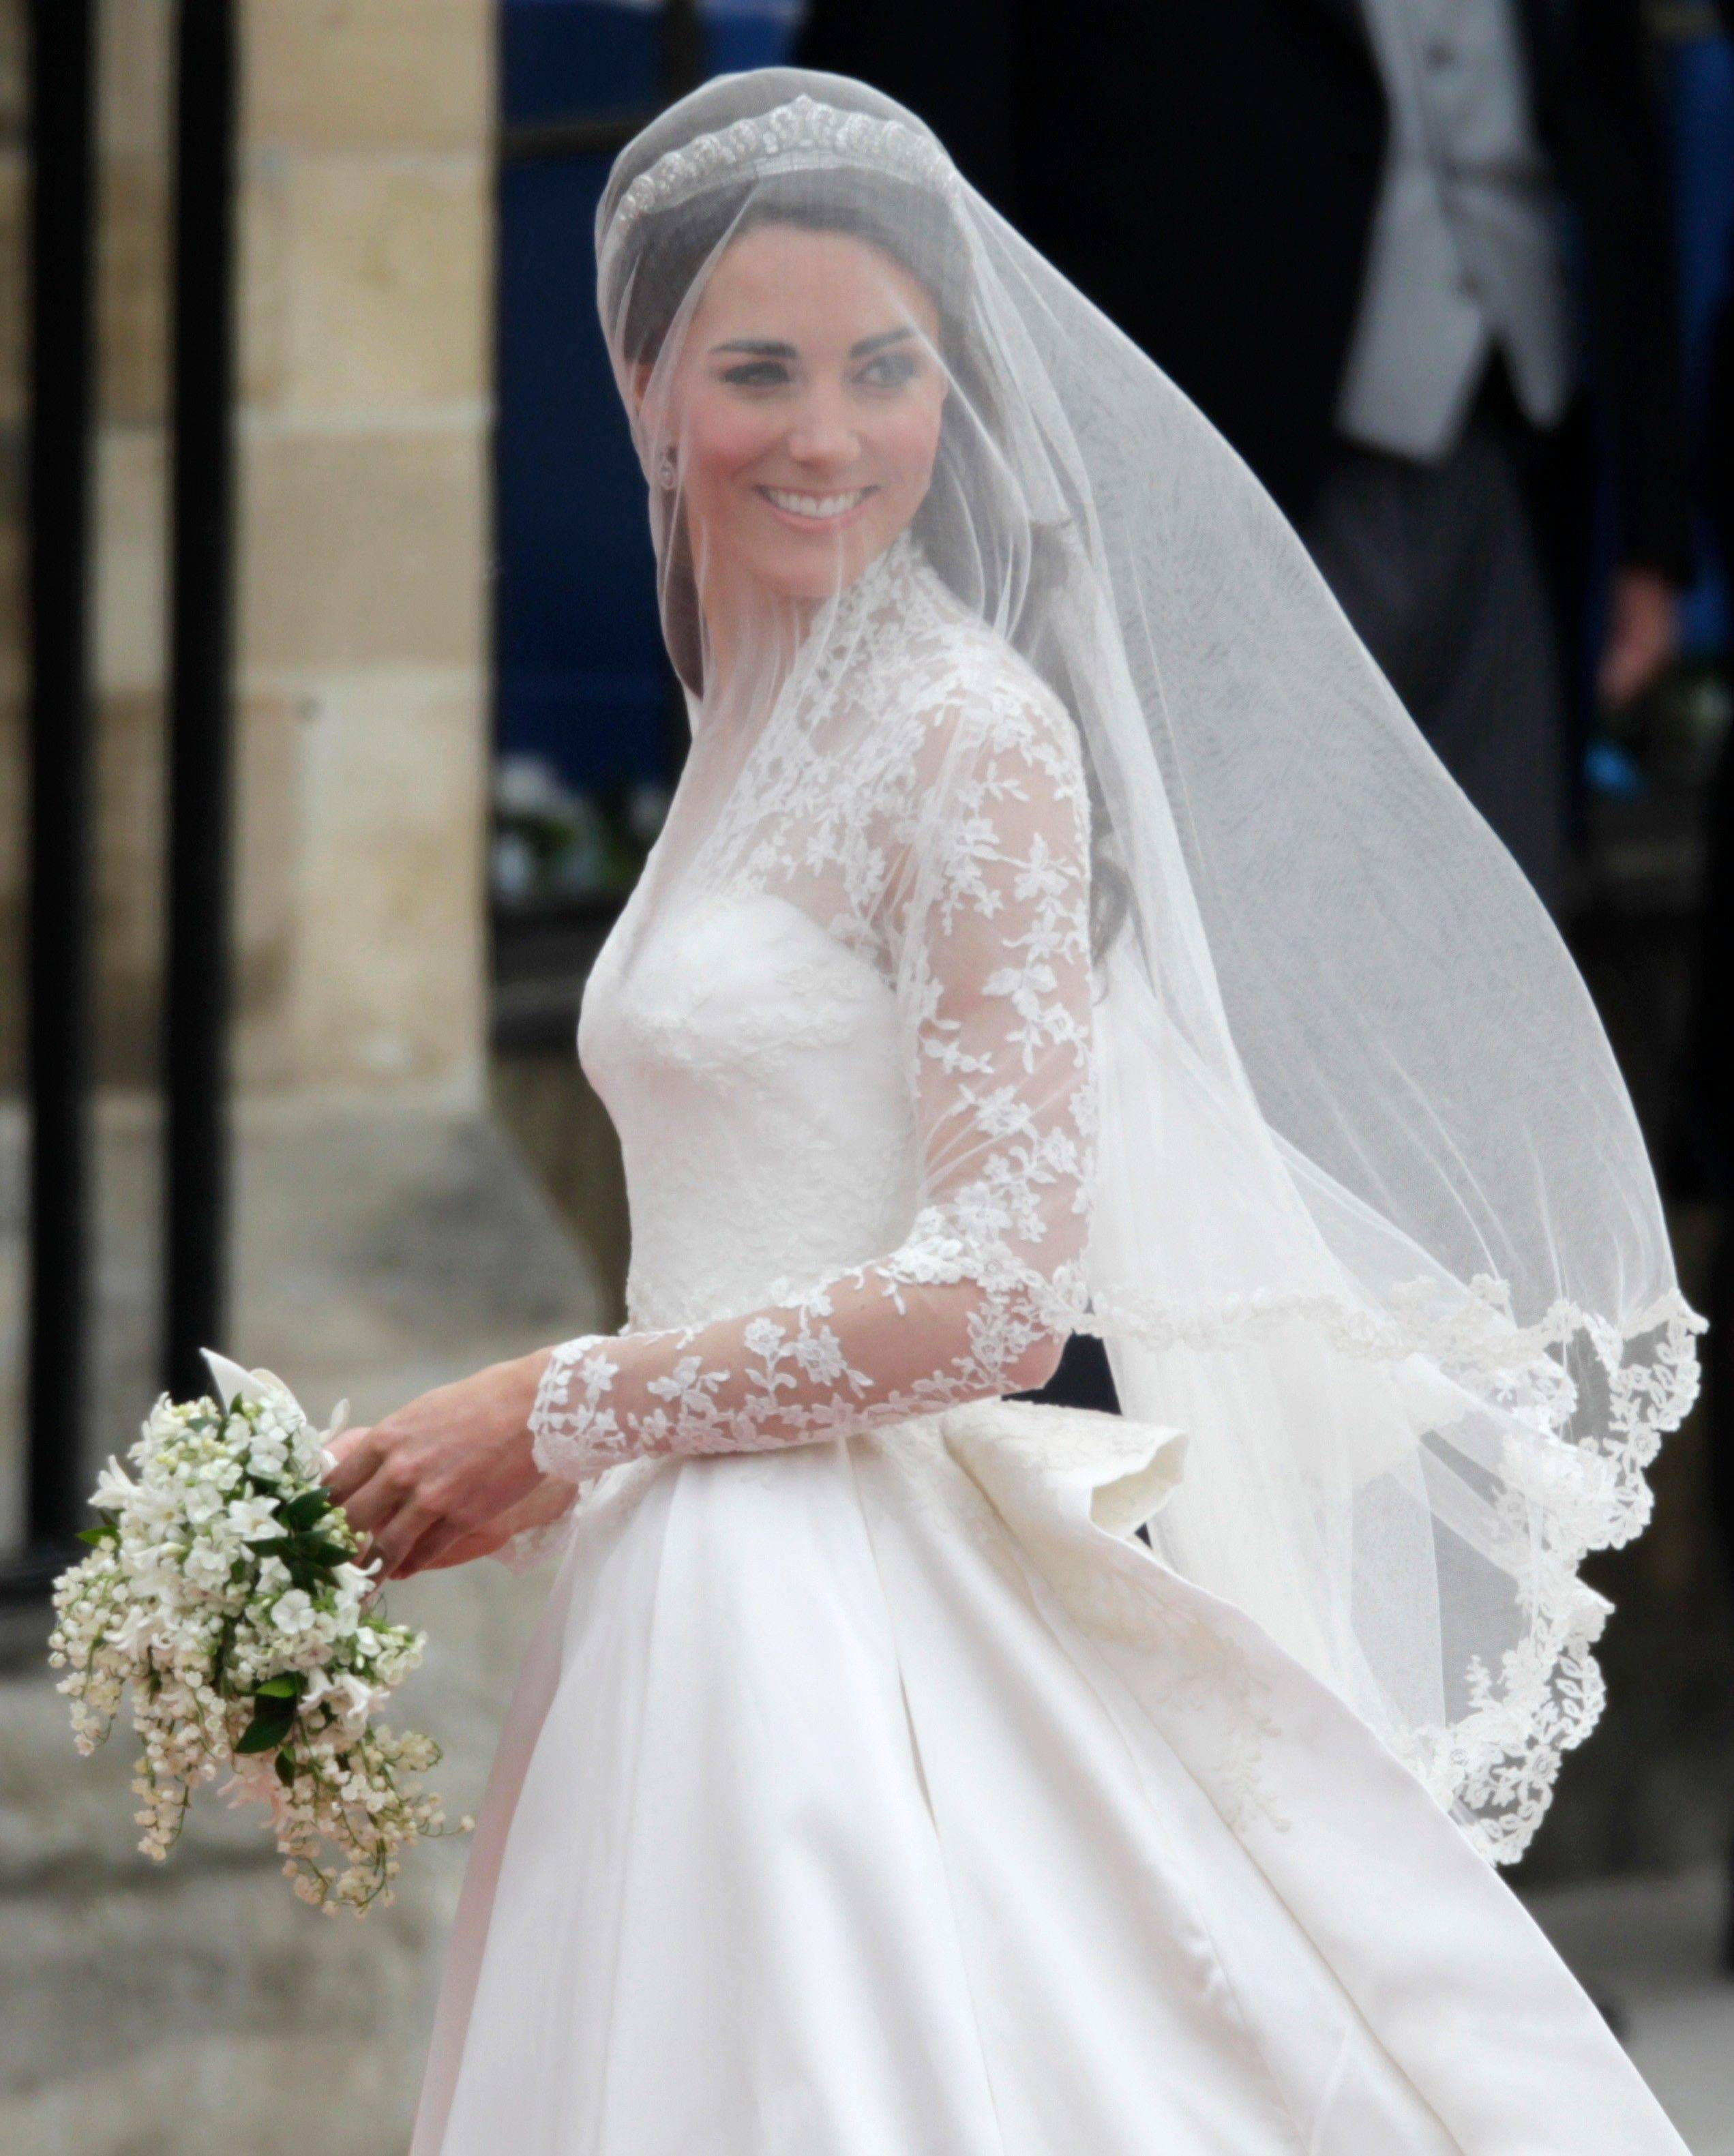 Kate Middleton arrives at Westminster Abbey at the Royal Wedding in London Friday, April 29, 2011.